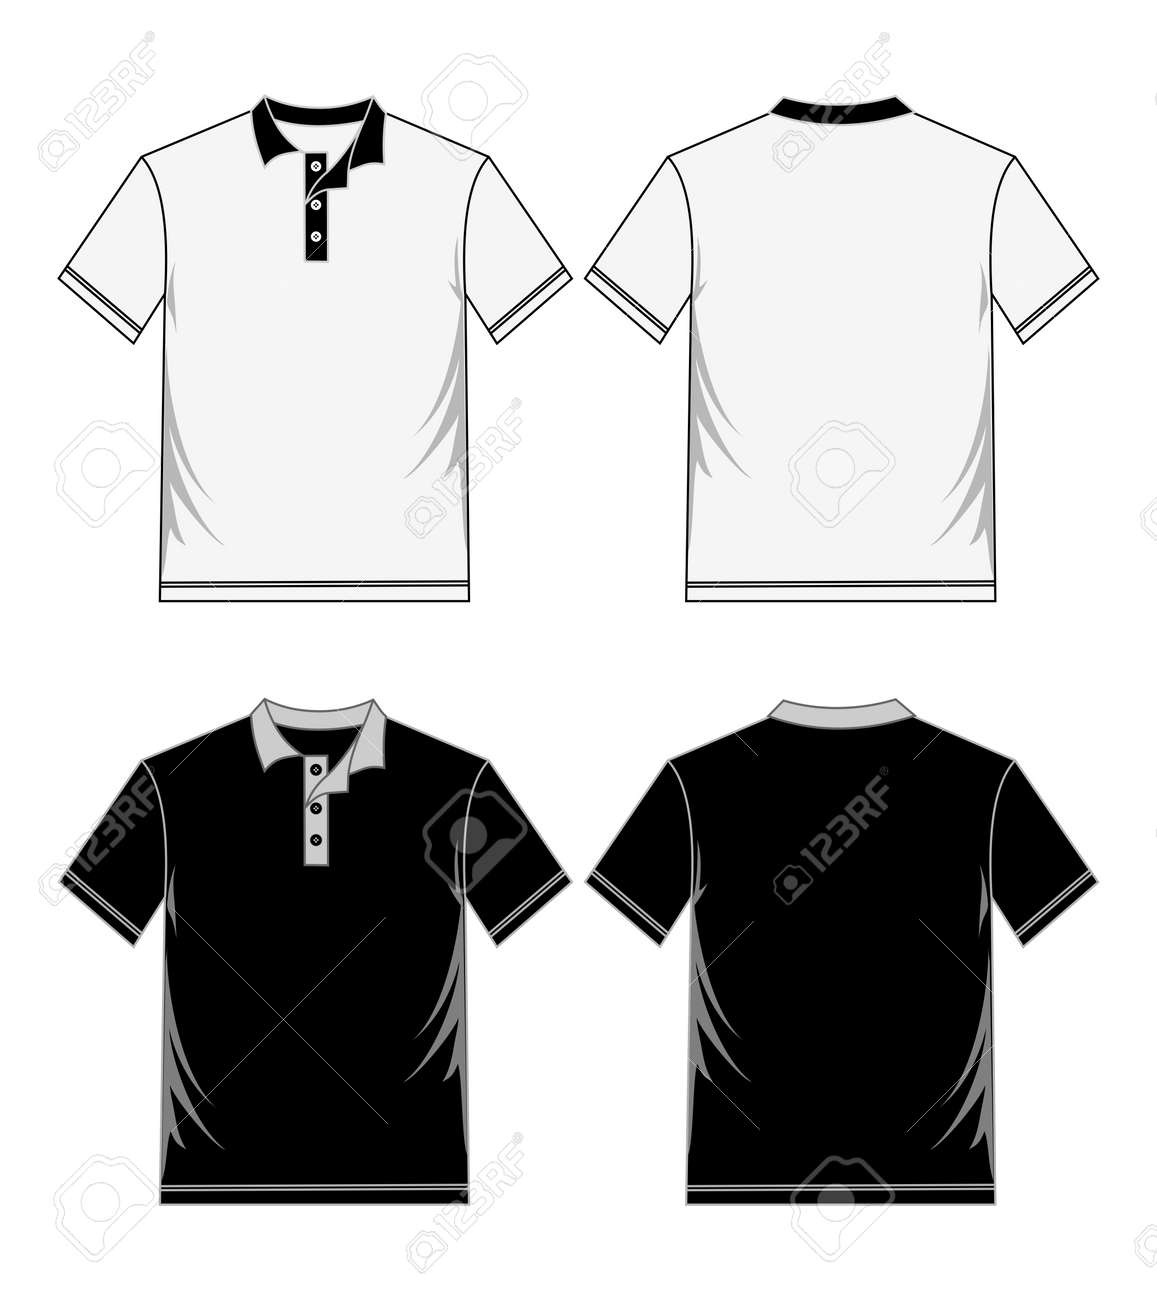 Shirt Template Black White Royalty Free Cliparts Vectors And Stock